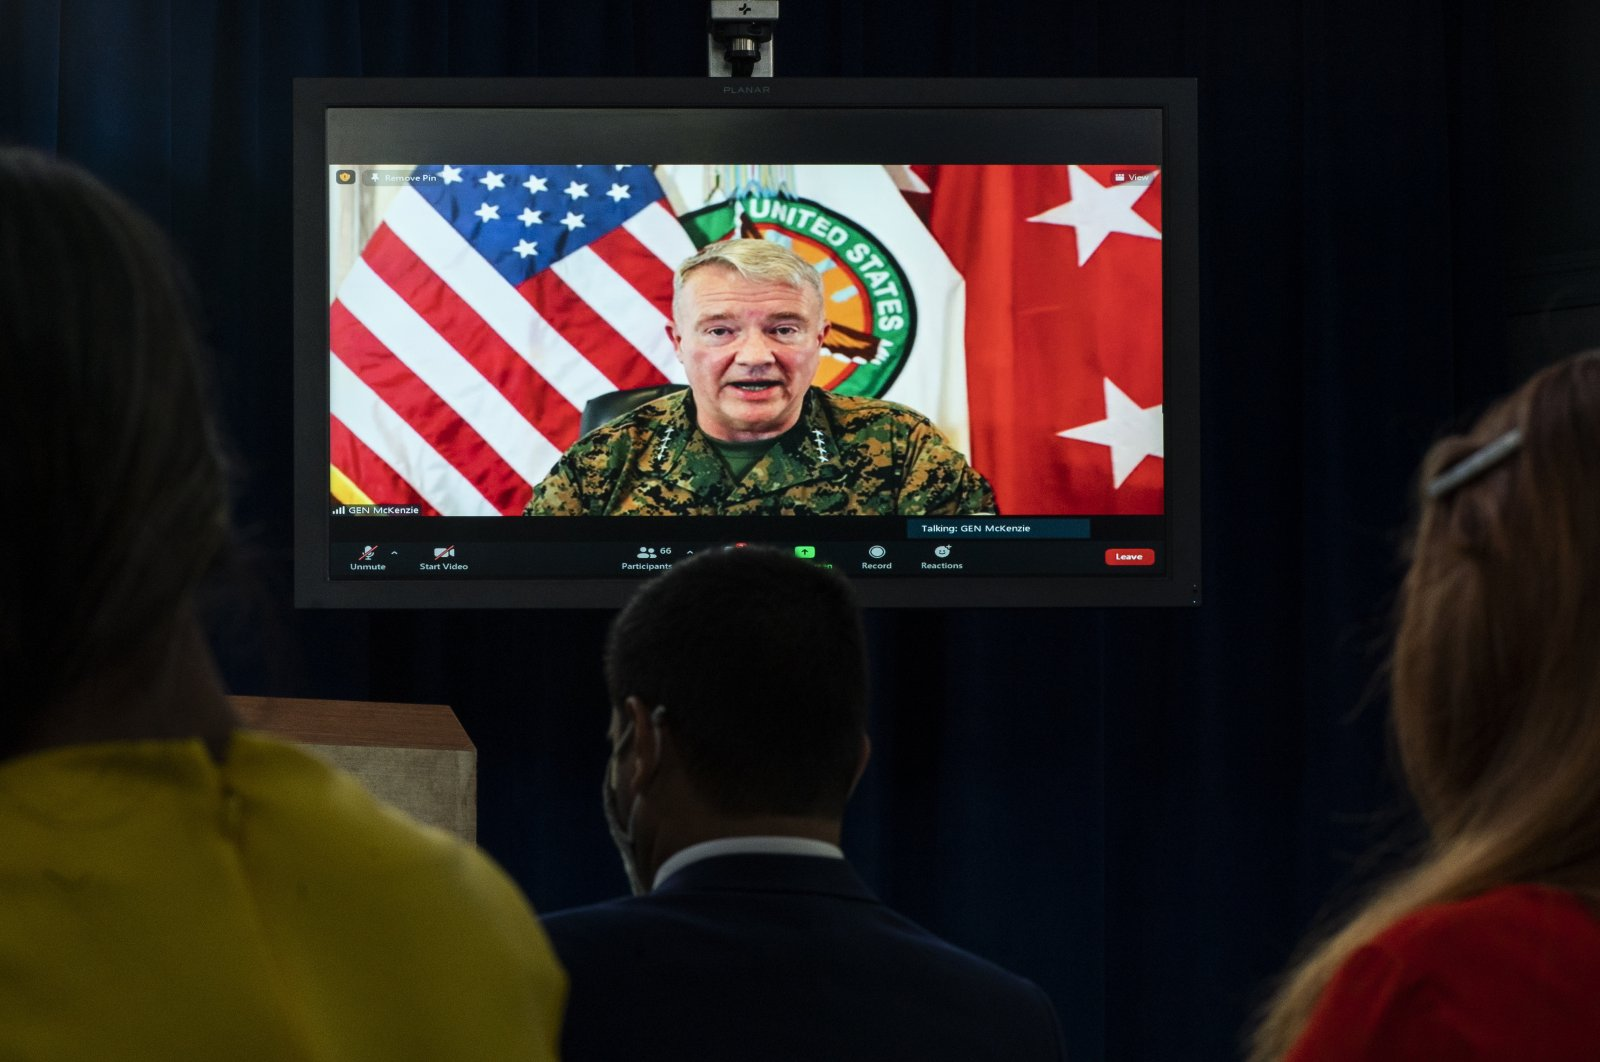 Gen. Frank McKenzie, Commander of U.S. Central Command, appearing onscreen from MacDill Air Force Base, in Tampa, Fla., speaks about Afghanistan during a virtual briefing at the Pentagon in Washington, D.C., U.S.,  Aug. 30, 2021. (AP Photo)